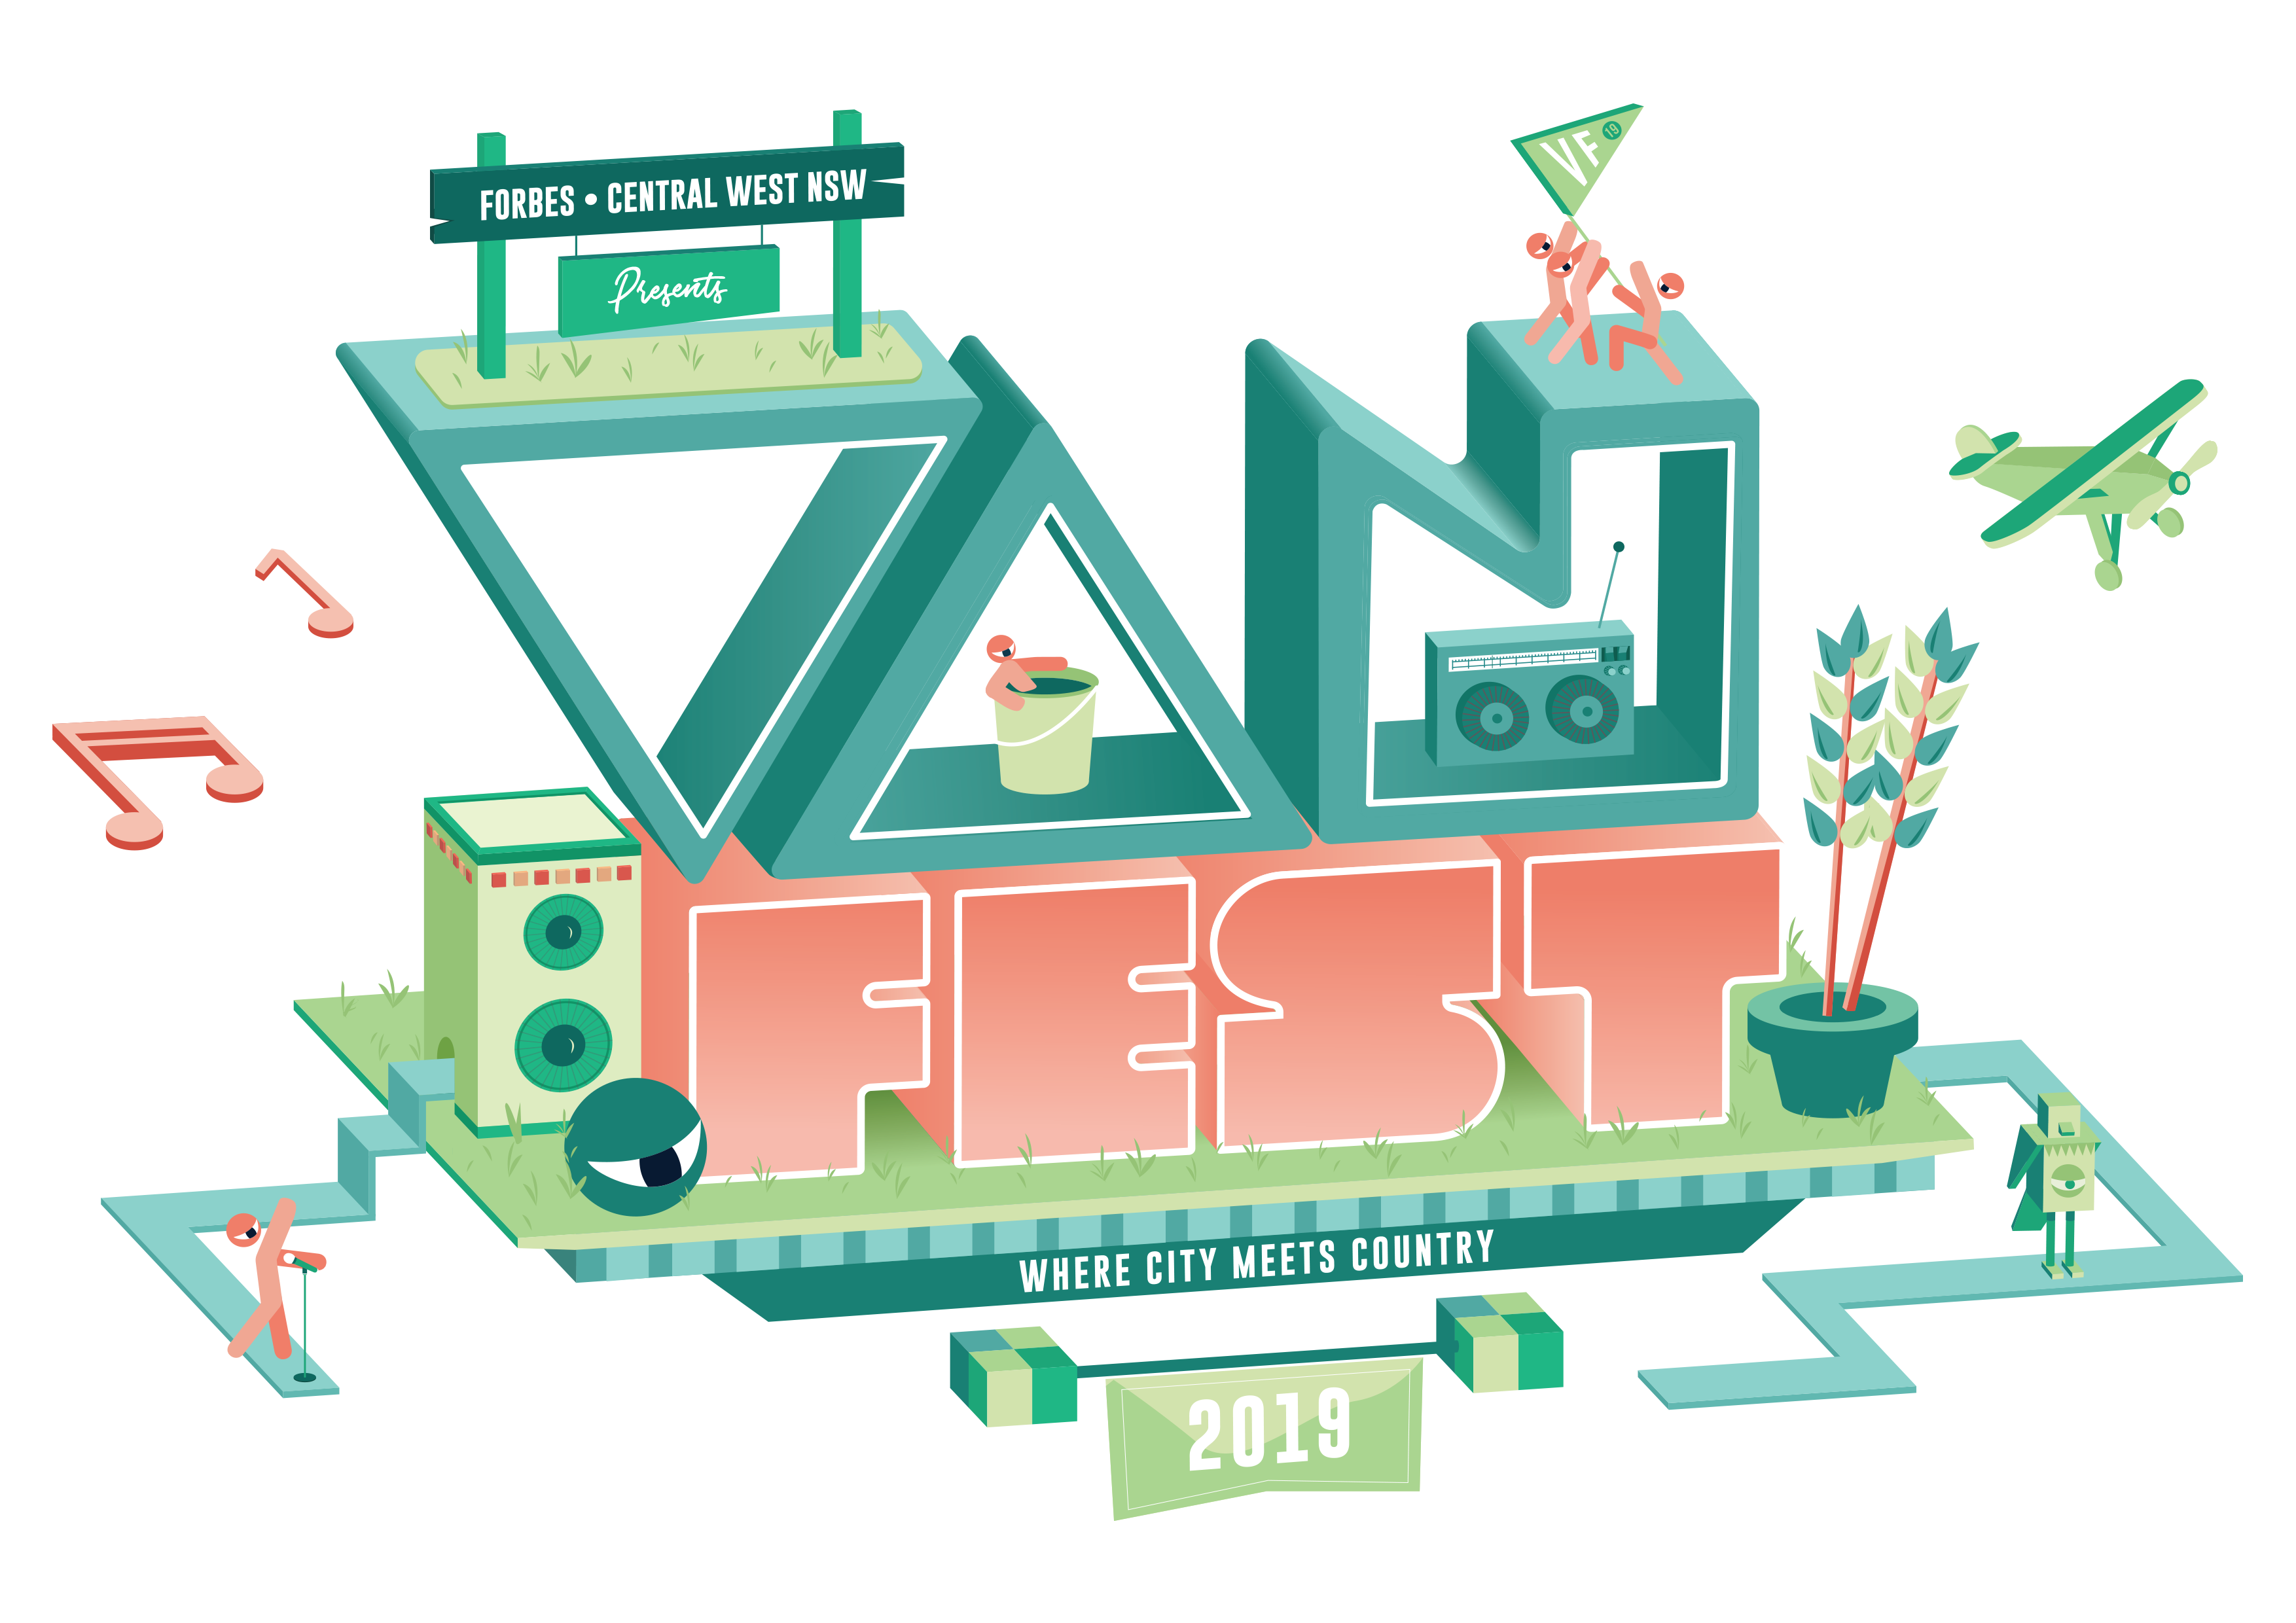 Tickets for VANFEST in Forbes from Ticketbooth